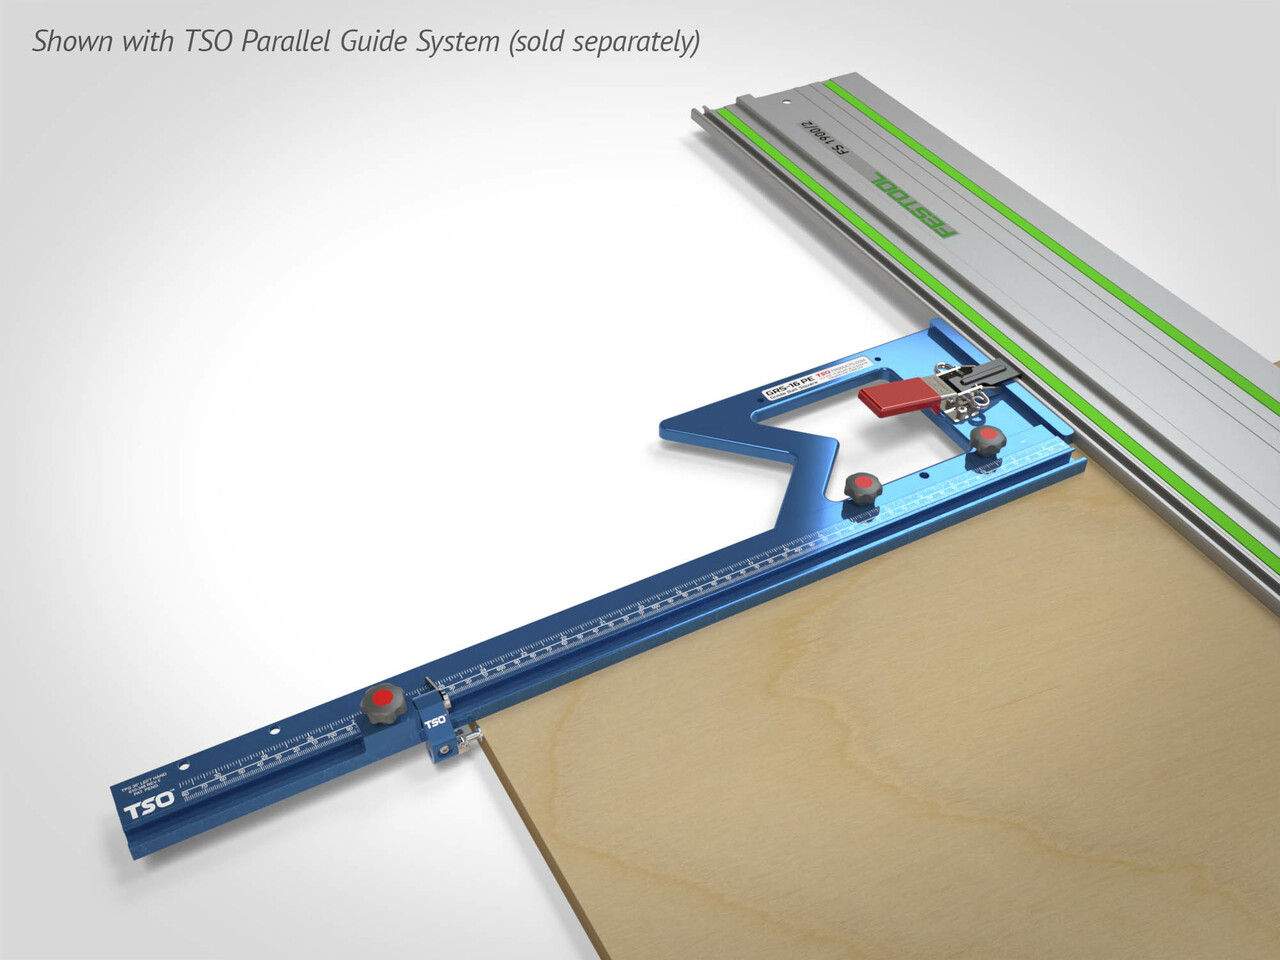 Compatible with the TSO Parallel Guide System (sold separately)